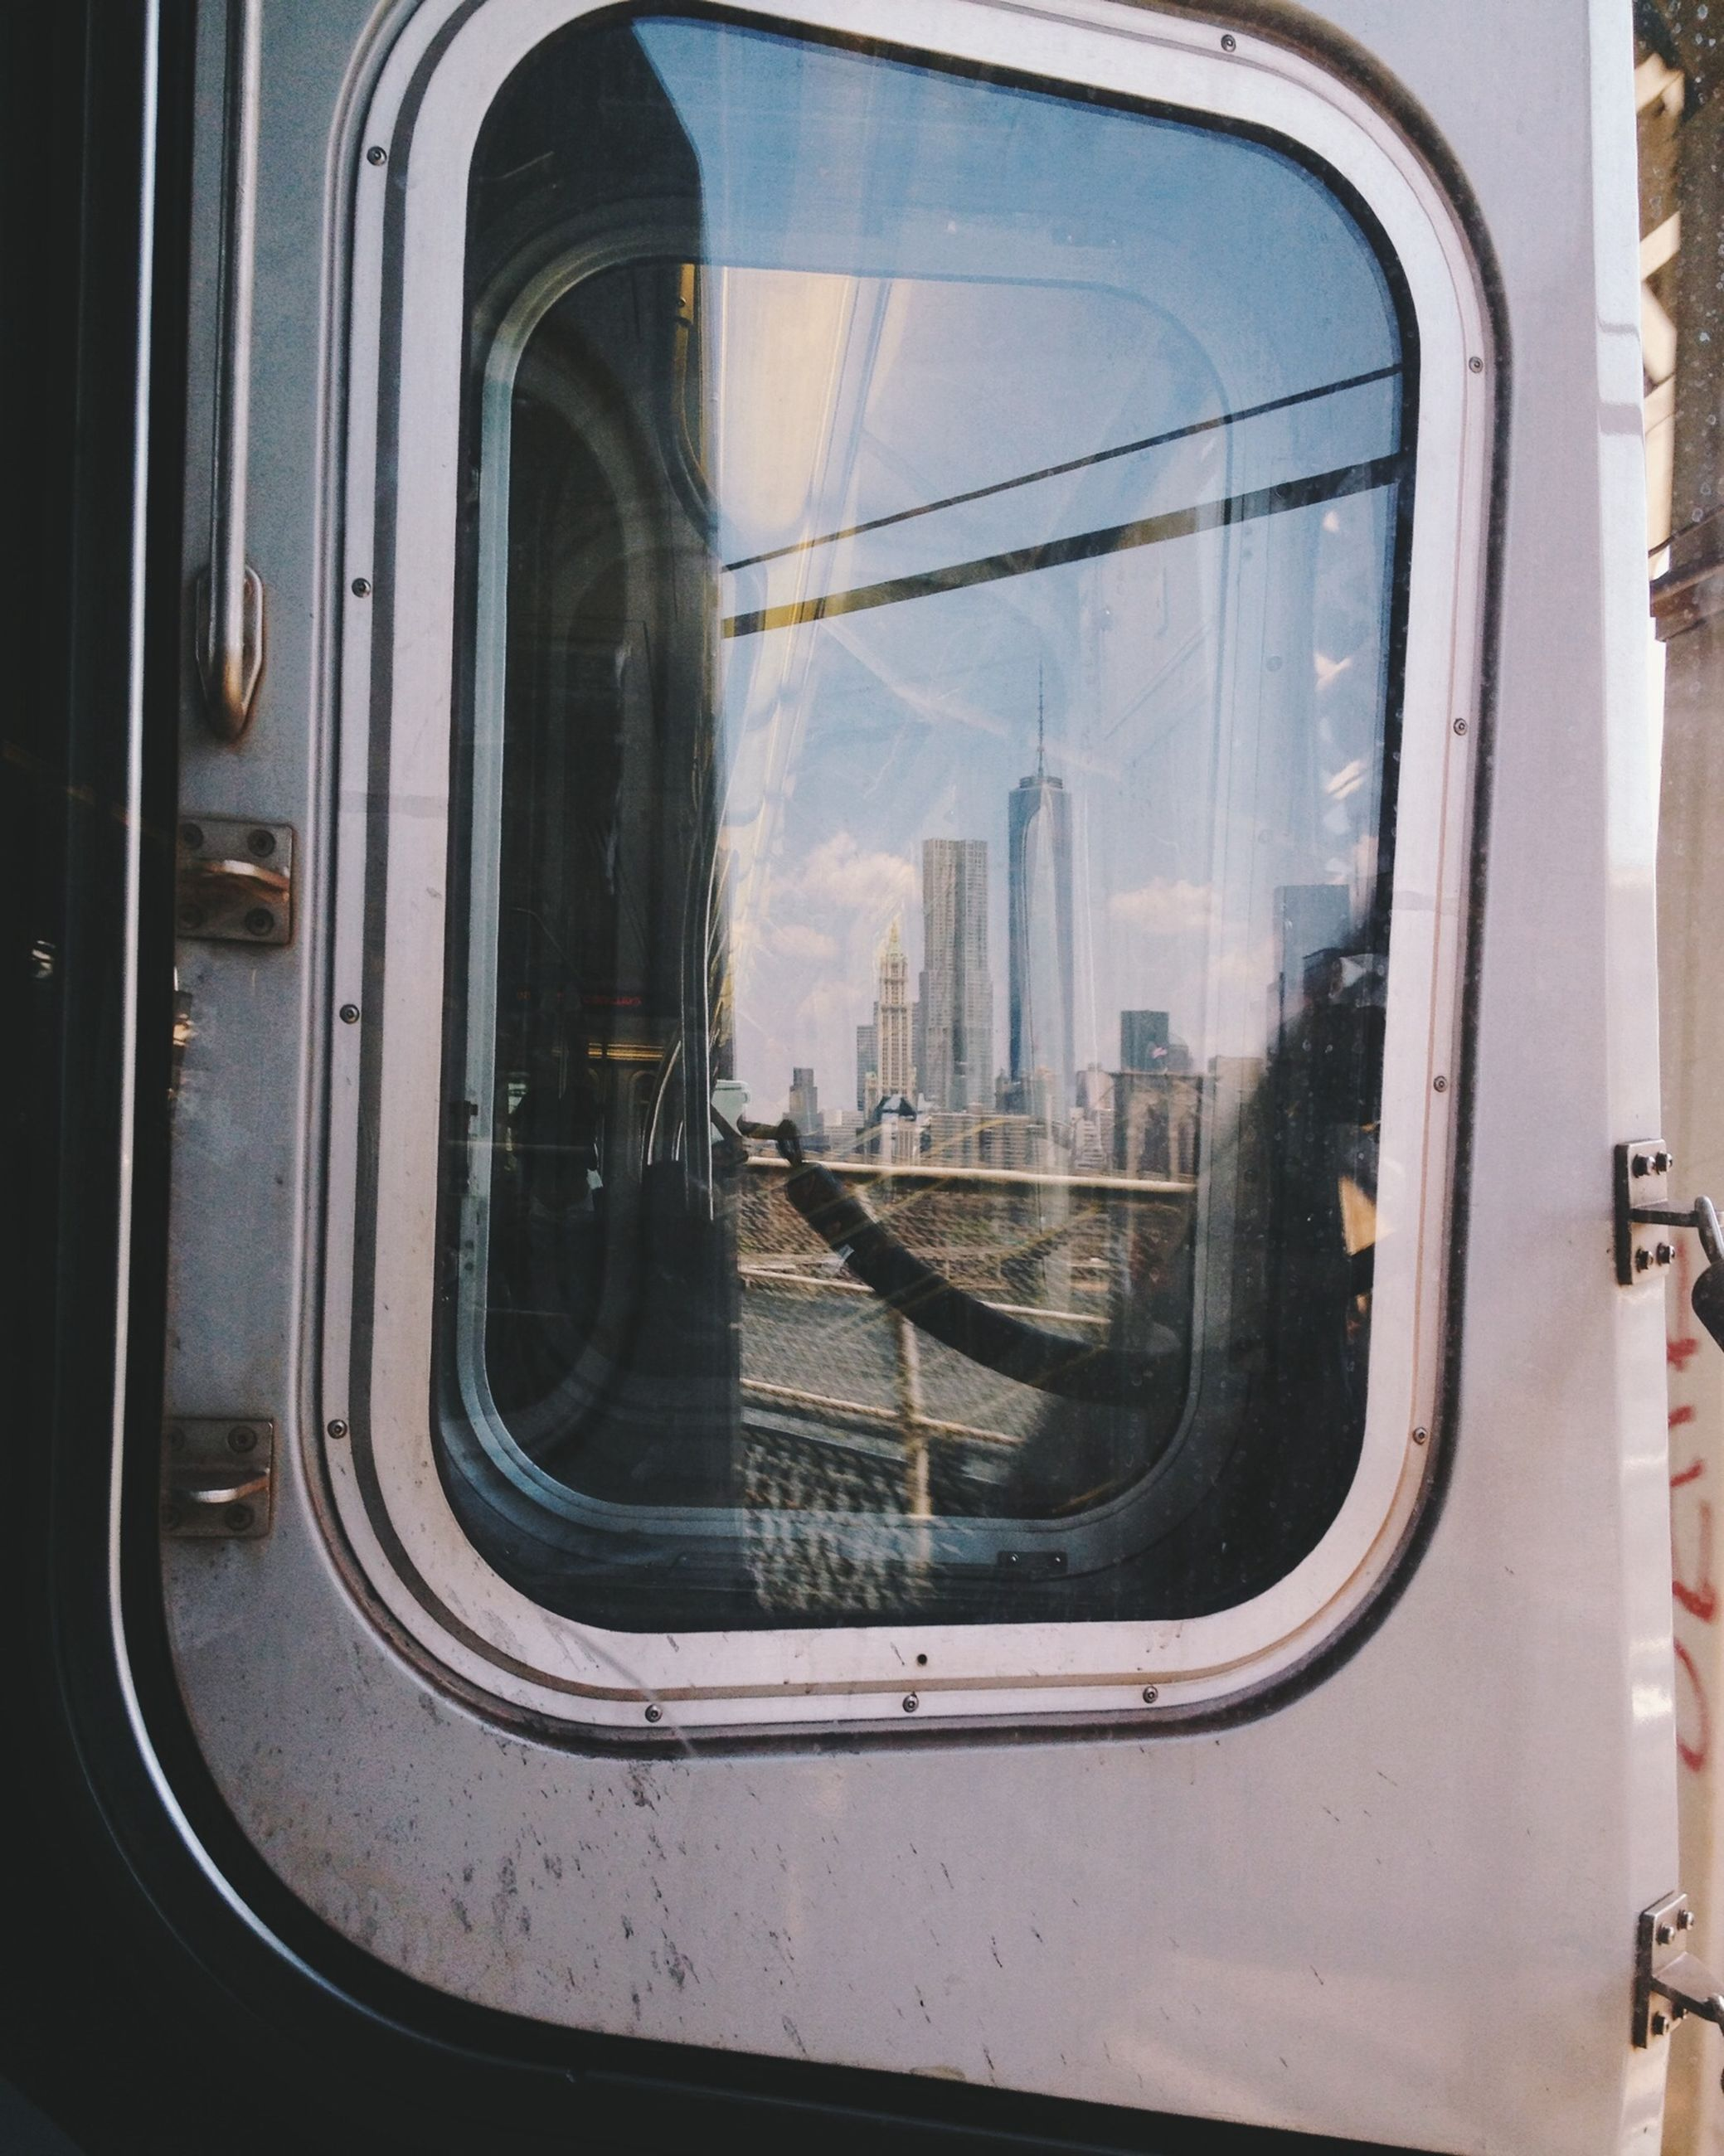 transportation, mode of transport, architecture, glass - material, window, built structure, car, vehicle interior, land vehicle, travel, city, public transportation, building exterior, transparent, indoors, train - vehicle, reflection, sky, looking through window, modern